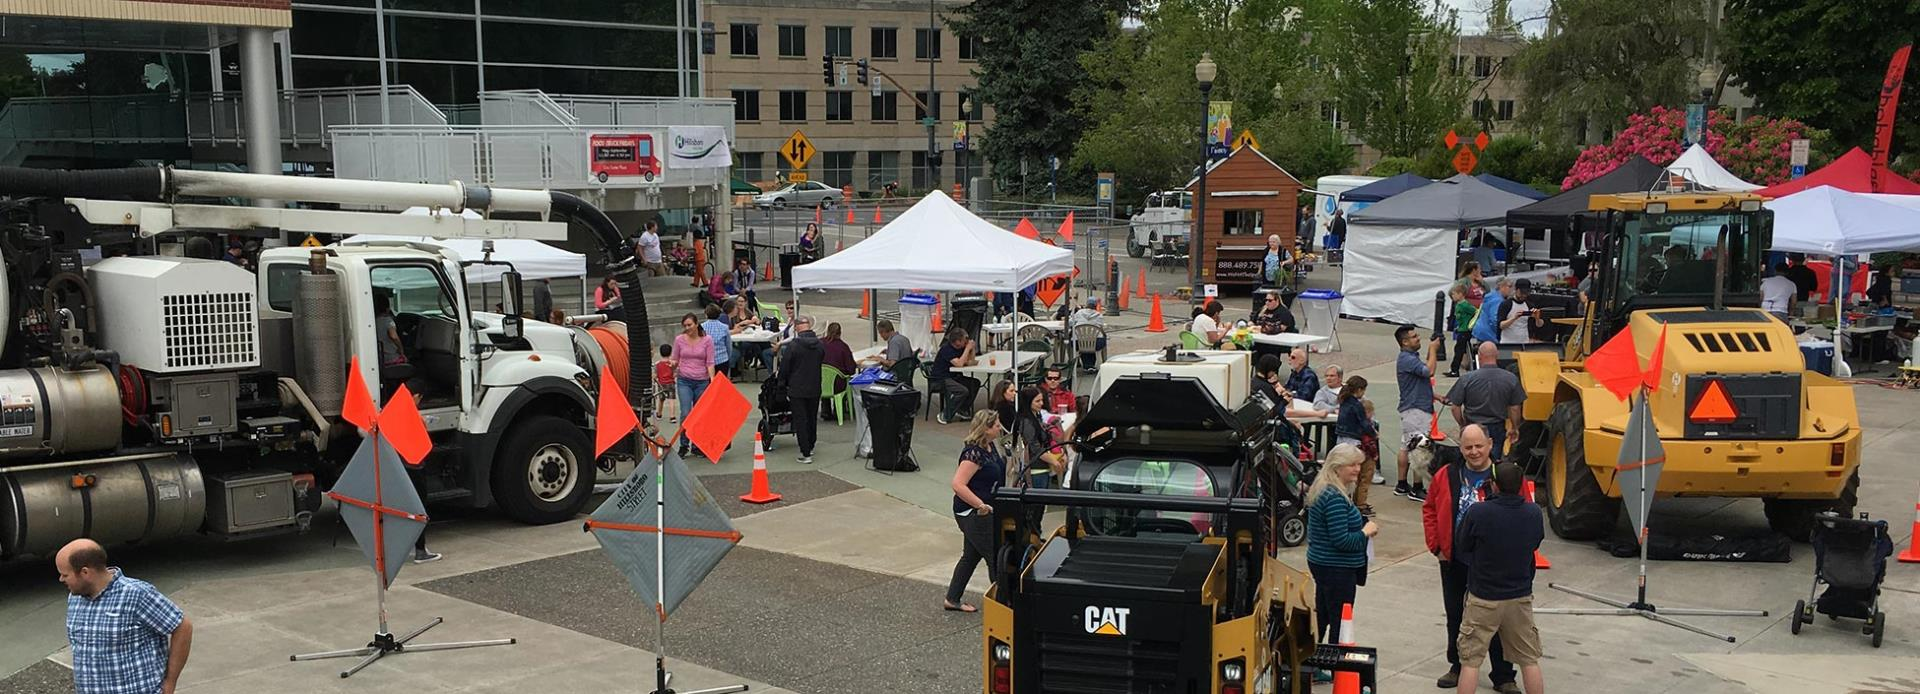 The Civic Center Plaza is pictured with tents, heavy equipment, and many visitors for Public Works Day.